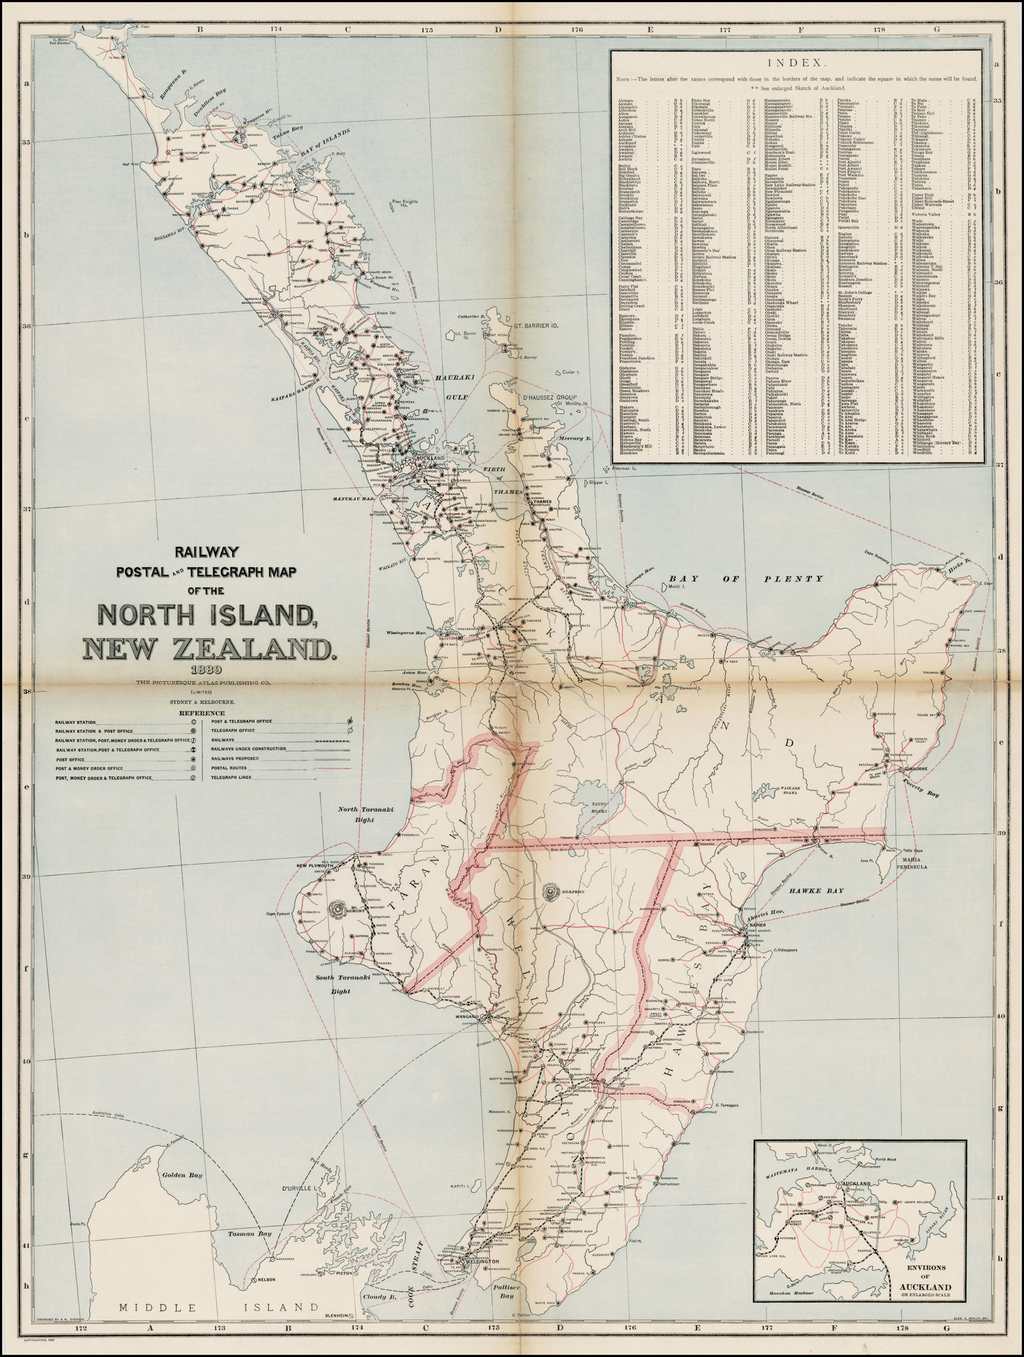 Railway Postal and Telegraph Map of the North Island New Zealand.  1889. By Andrew Garran